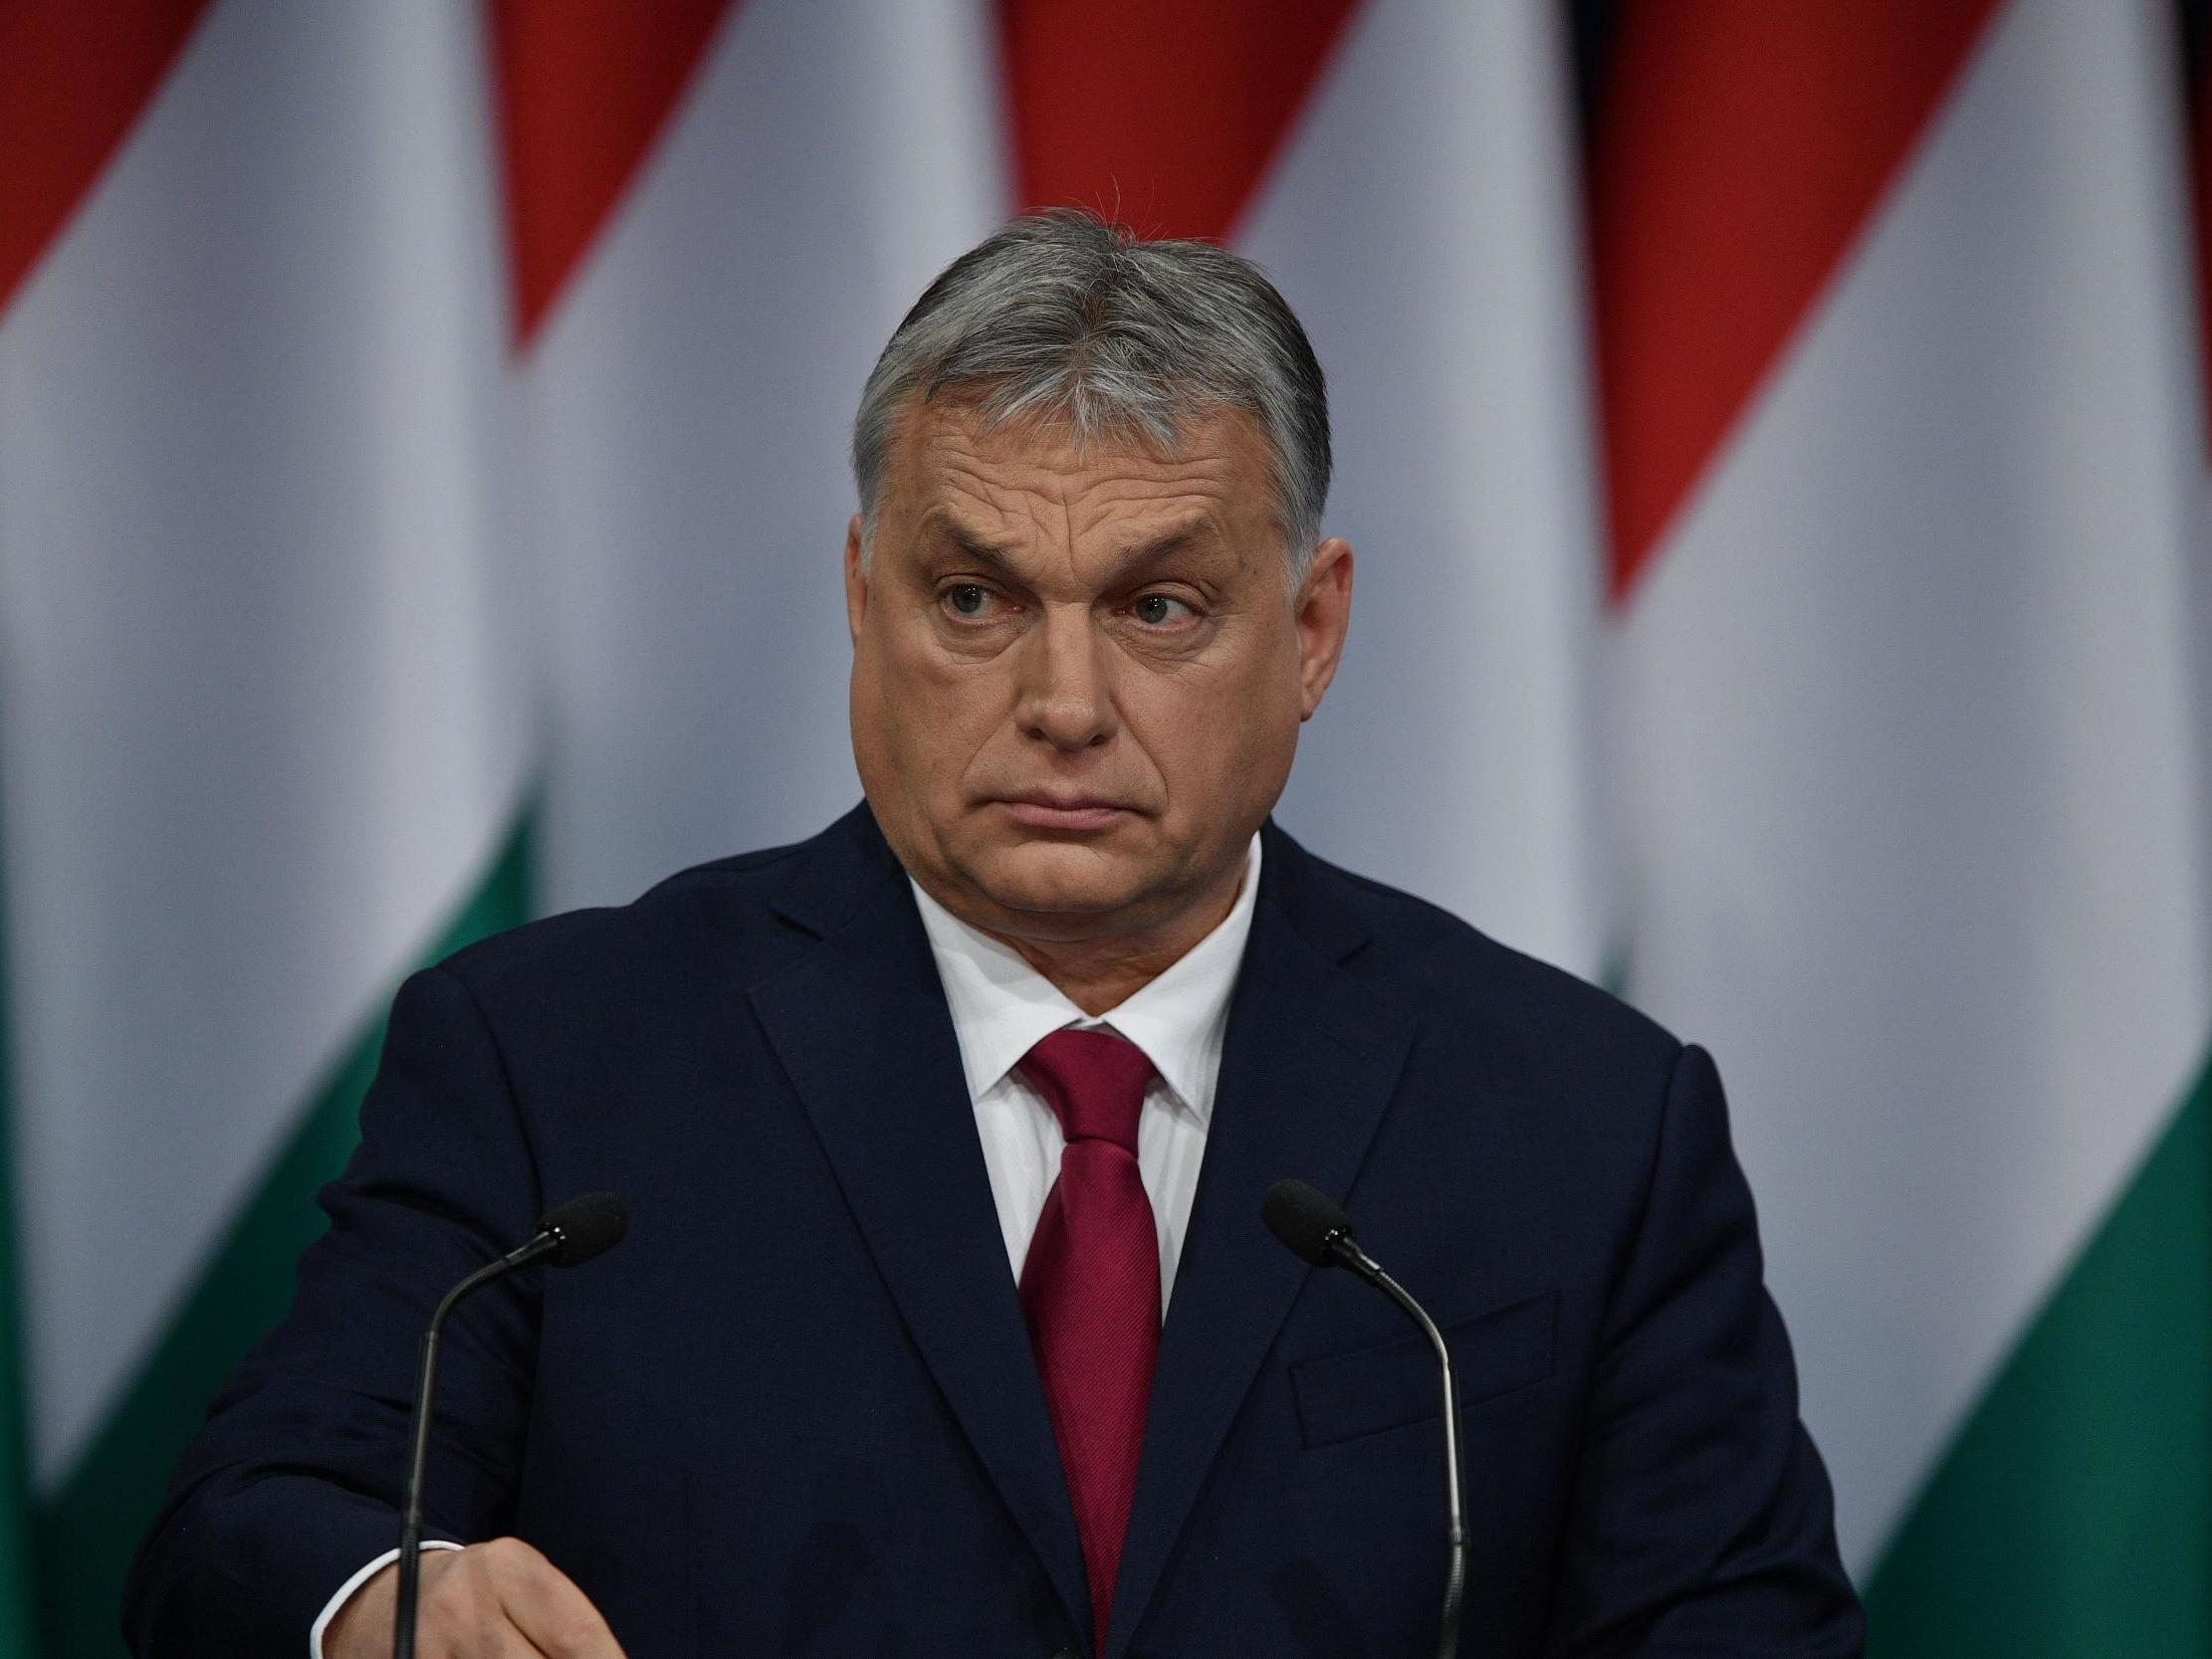 Hungary far-right leader handed sweeping new powers to rule by decree amid coronavirus pandemic